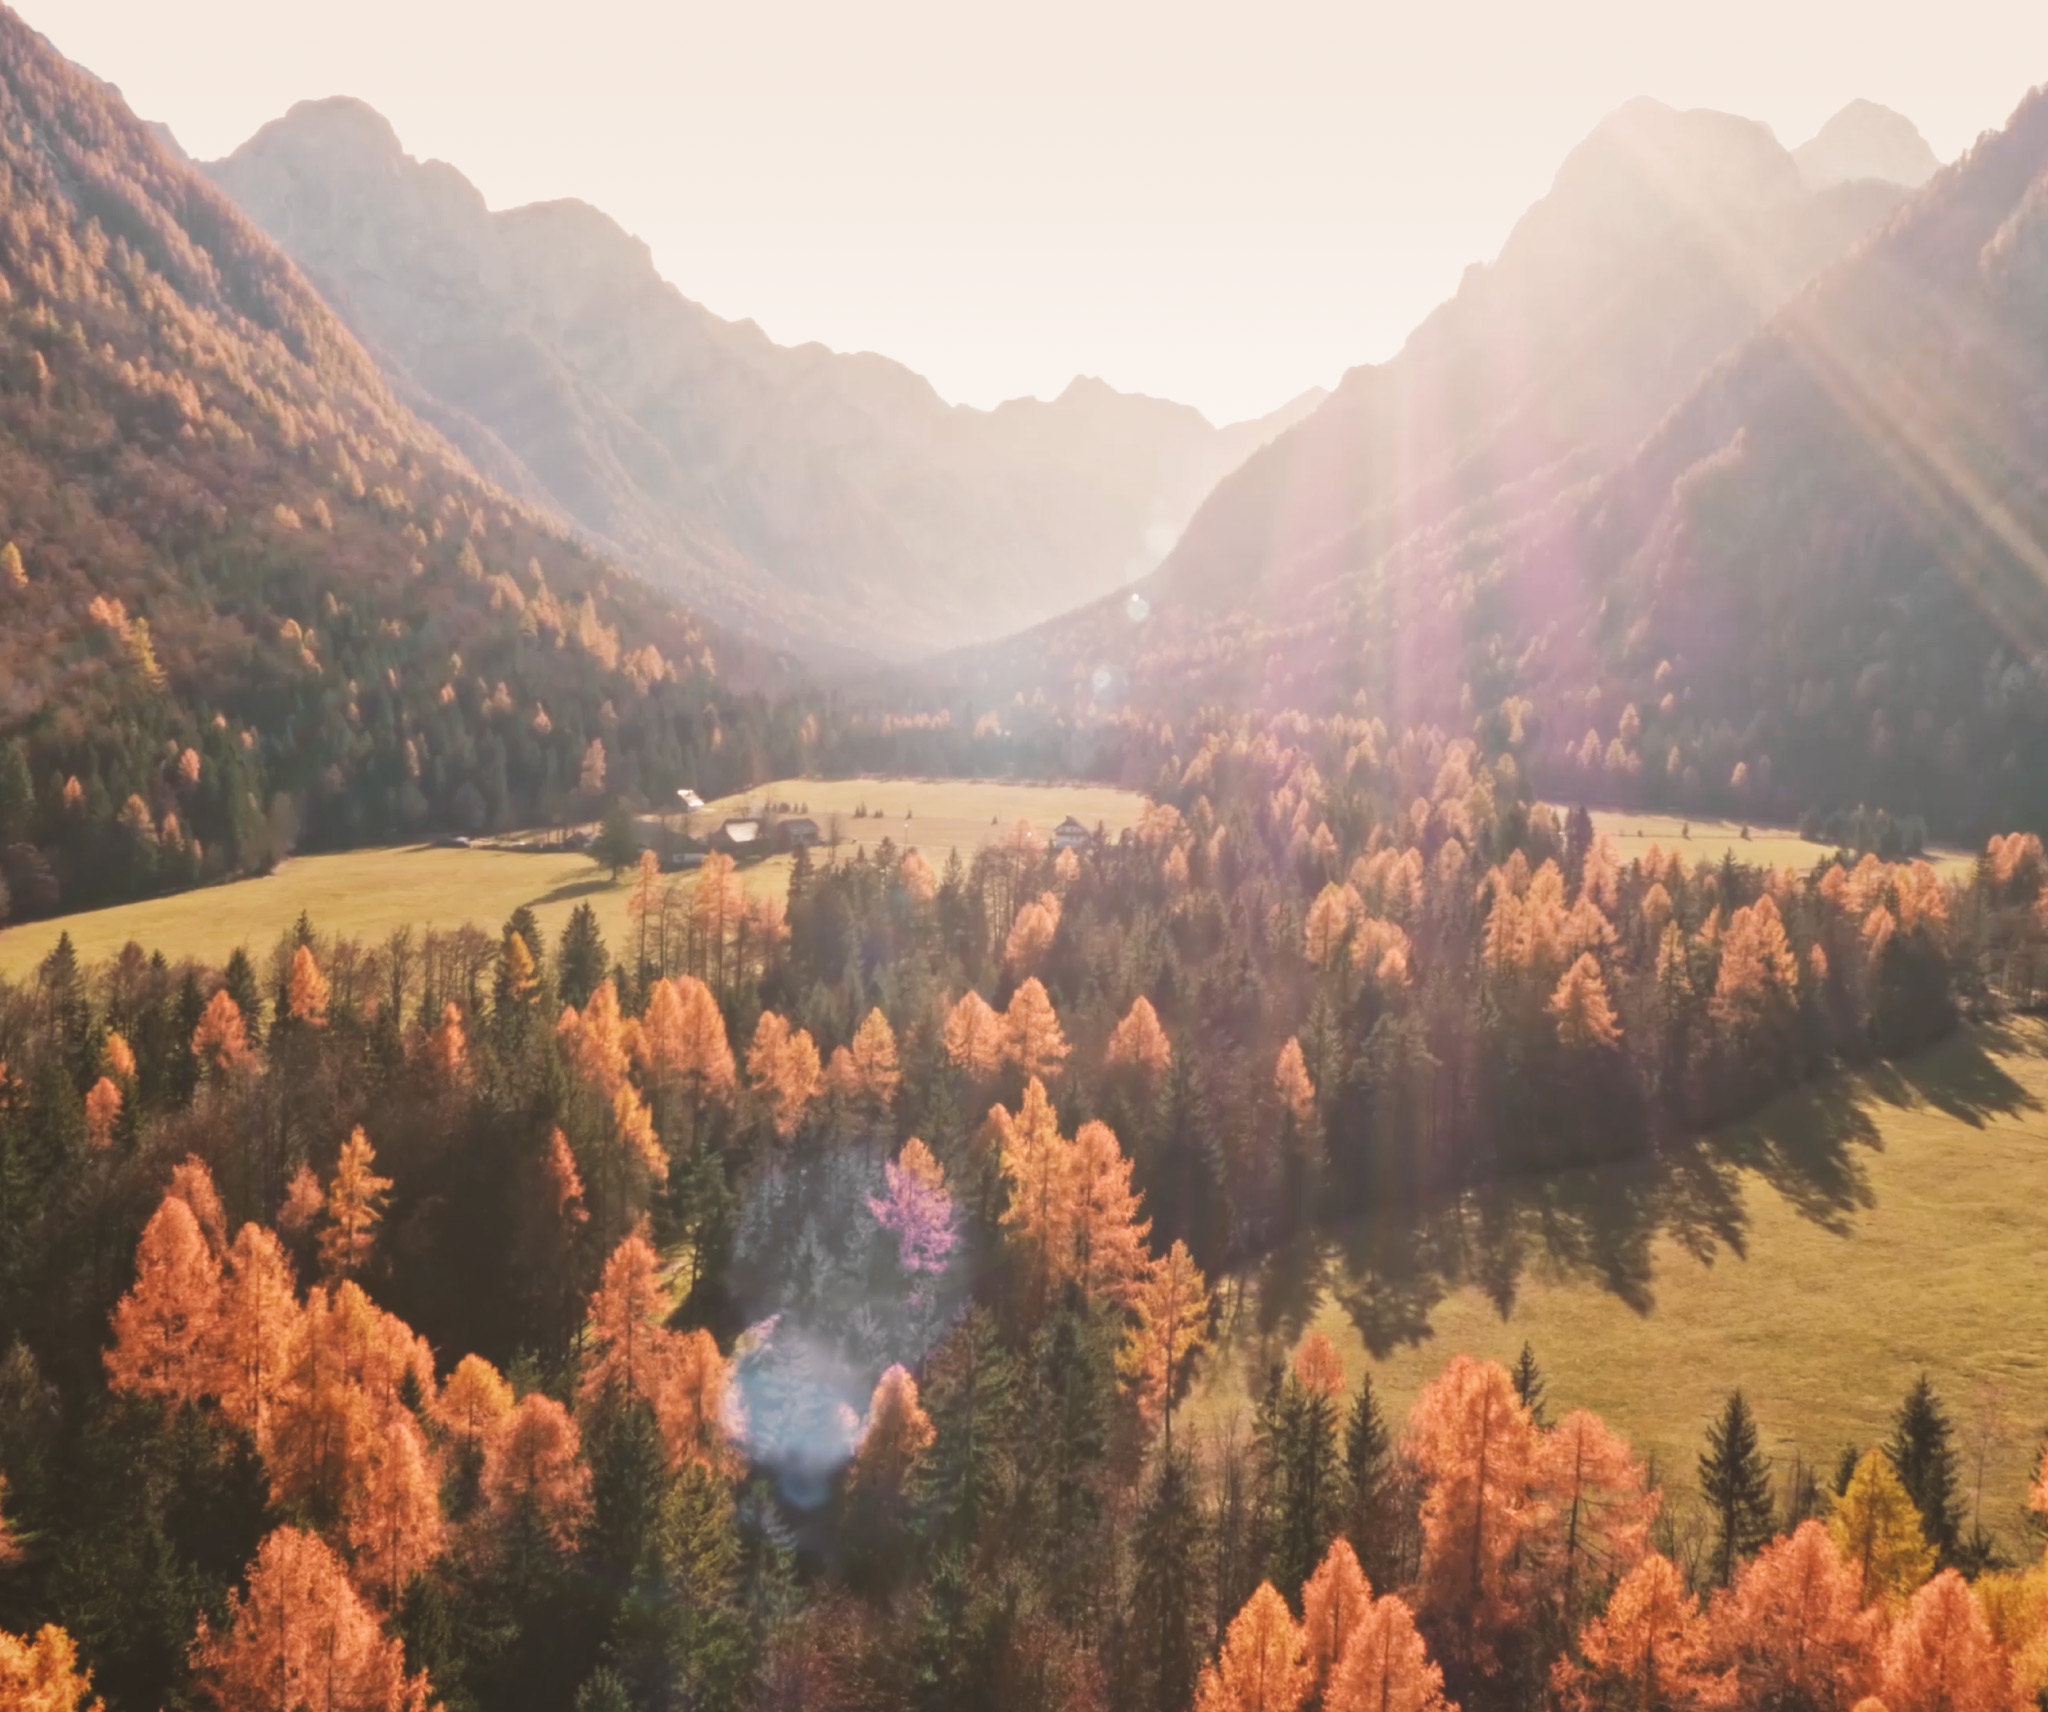 Still from the video depicting a full view of a valley, with trees, grass fields and mountains.